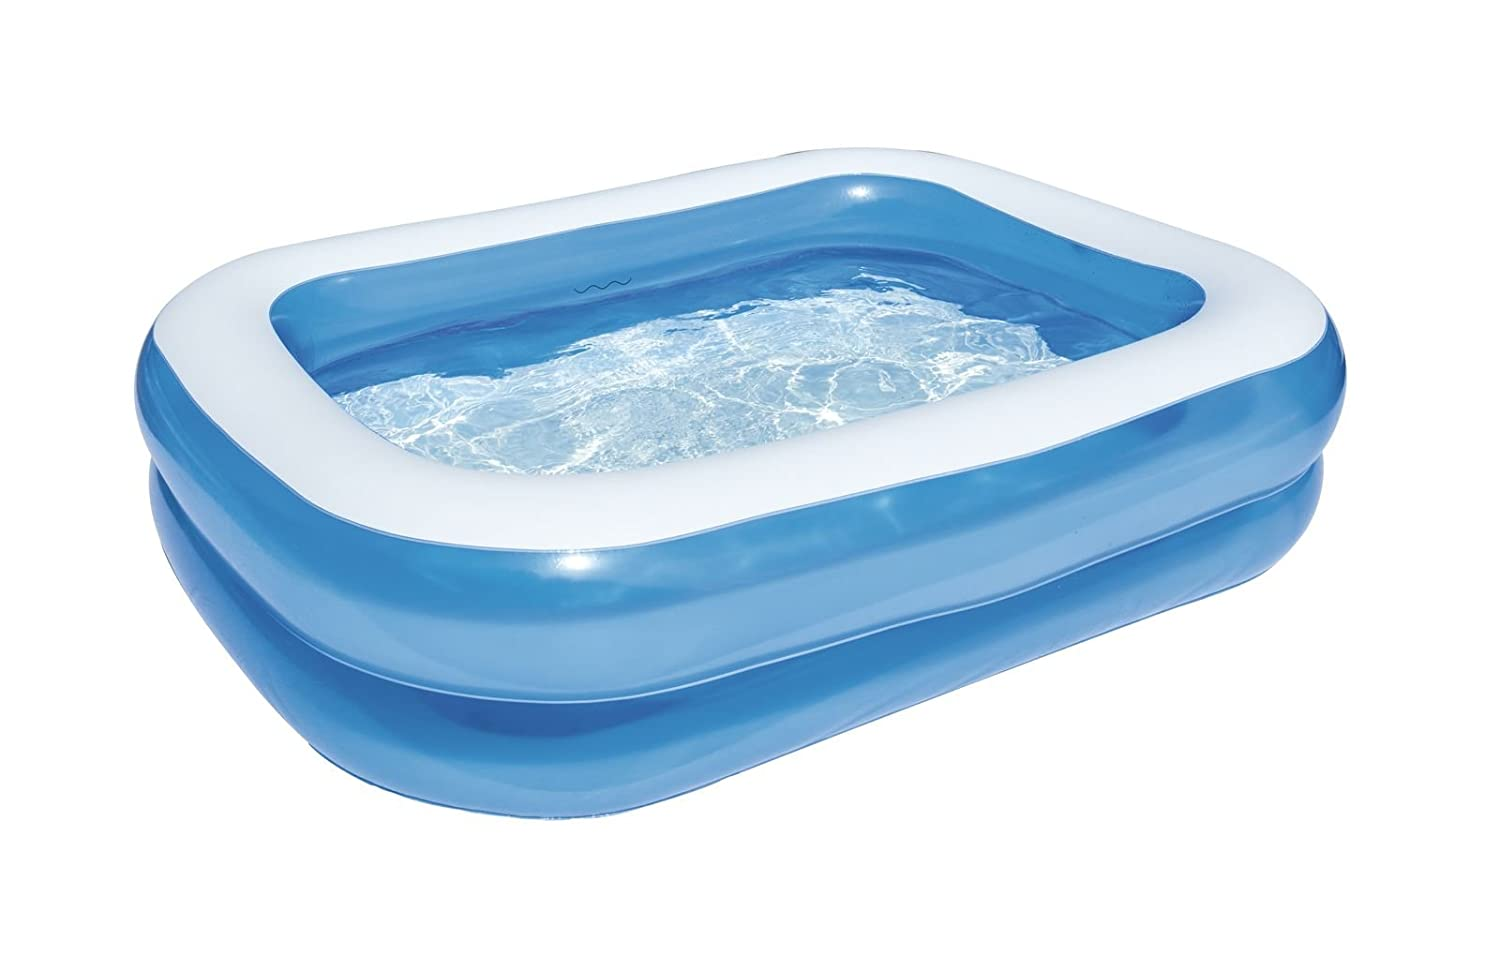 "Bestway Family Pool""Blue Rectangular"", 201x150x51cm 54005B"